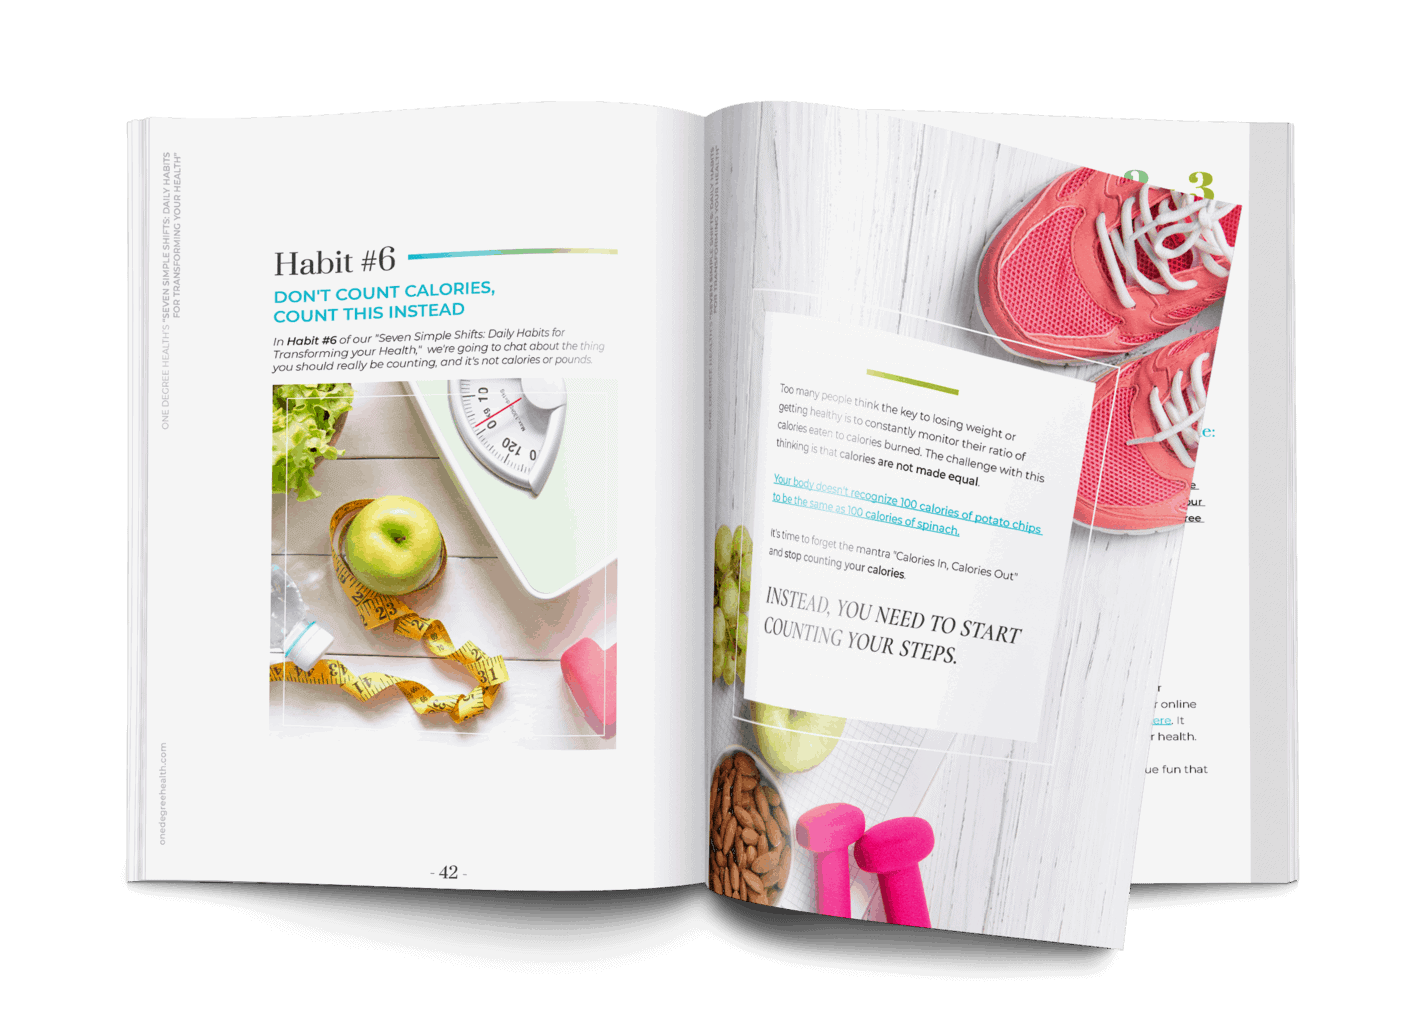 ODH Magazine Habit6 Steps - 7 Habits to Transform your Health - Download Action Guide PDF